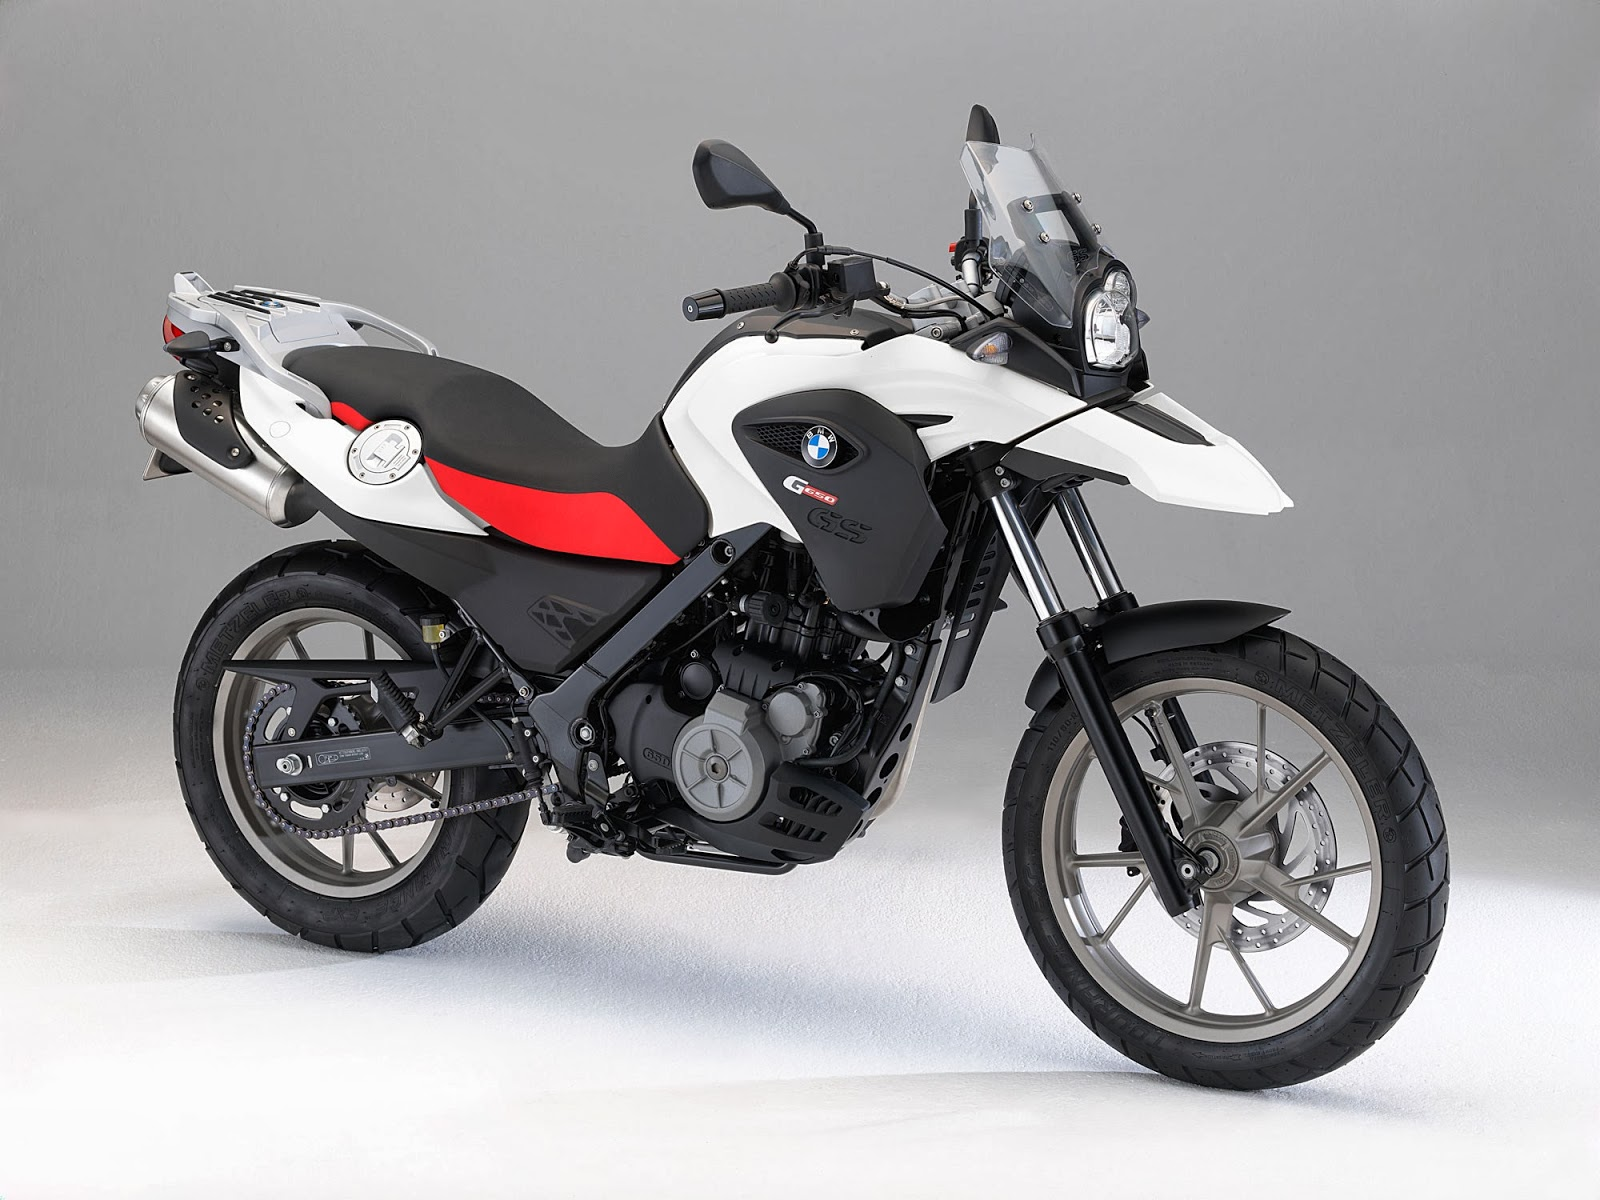 New Car 2013 Hd BMW G 650 GS Wallpaper...